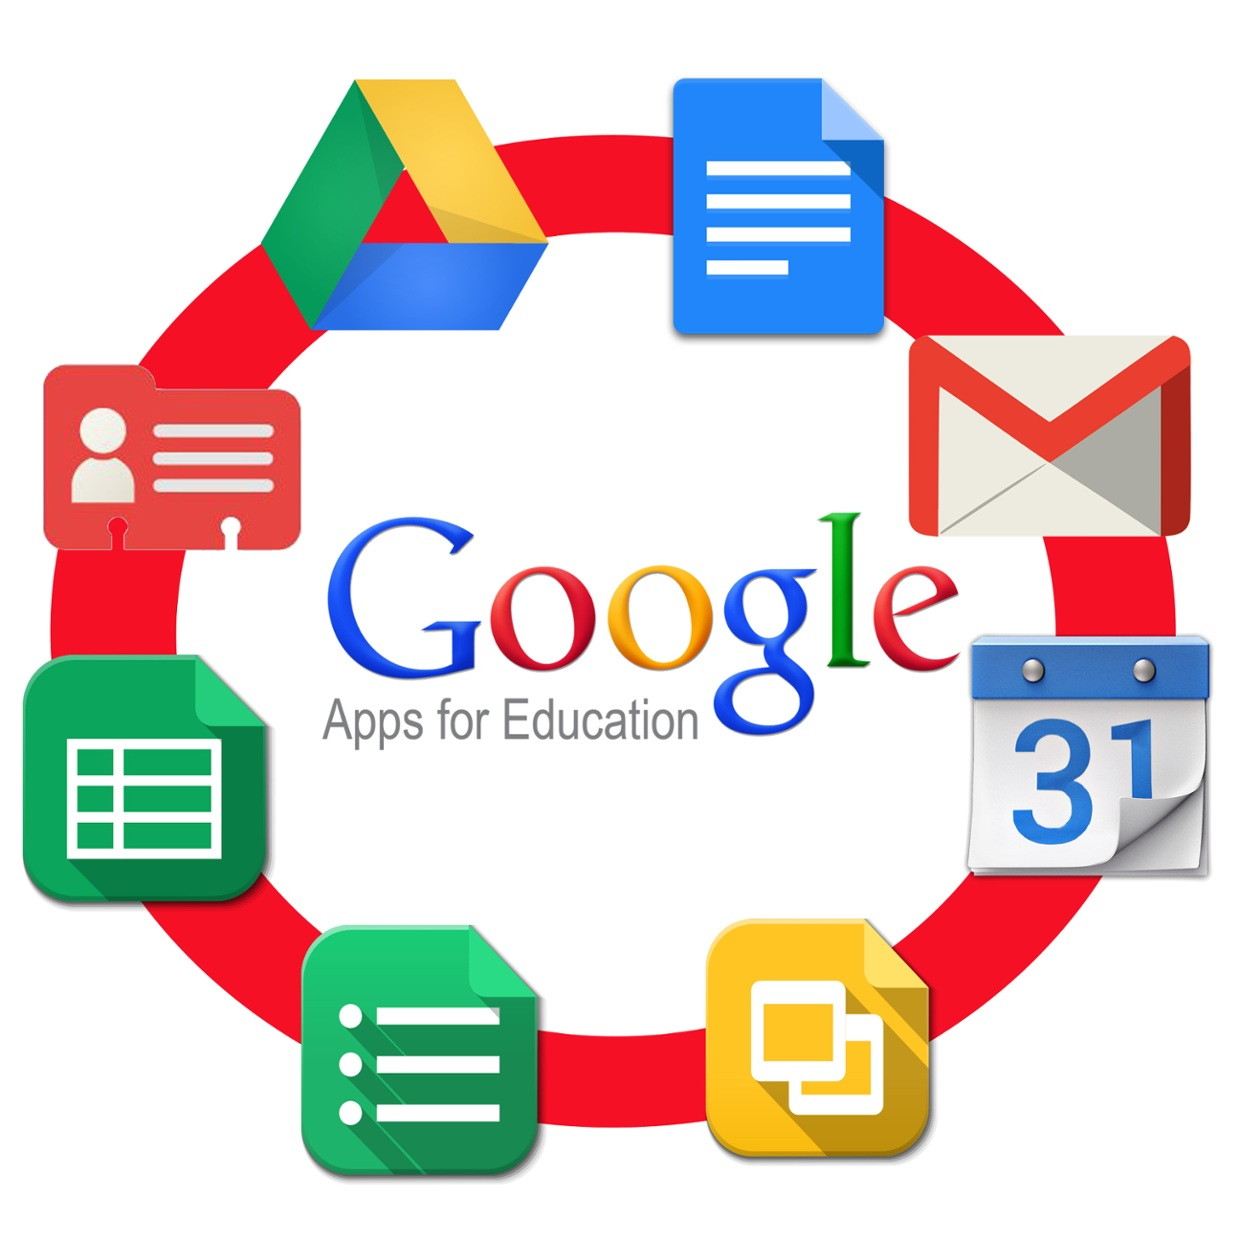 How to use Gmail, How to use Calendar, How to use Present...